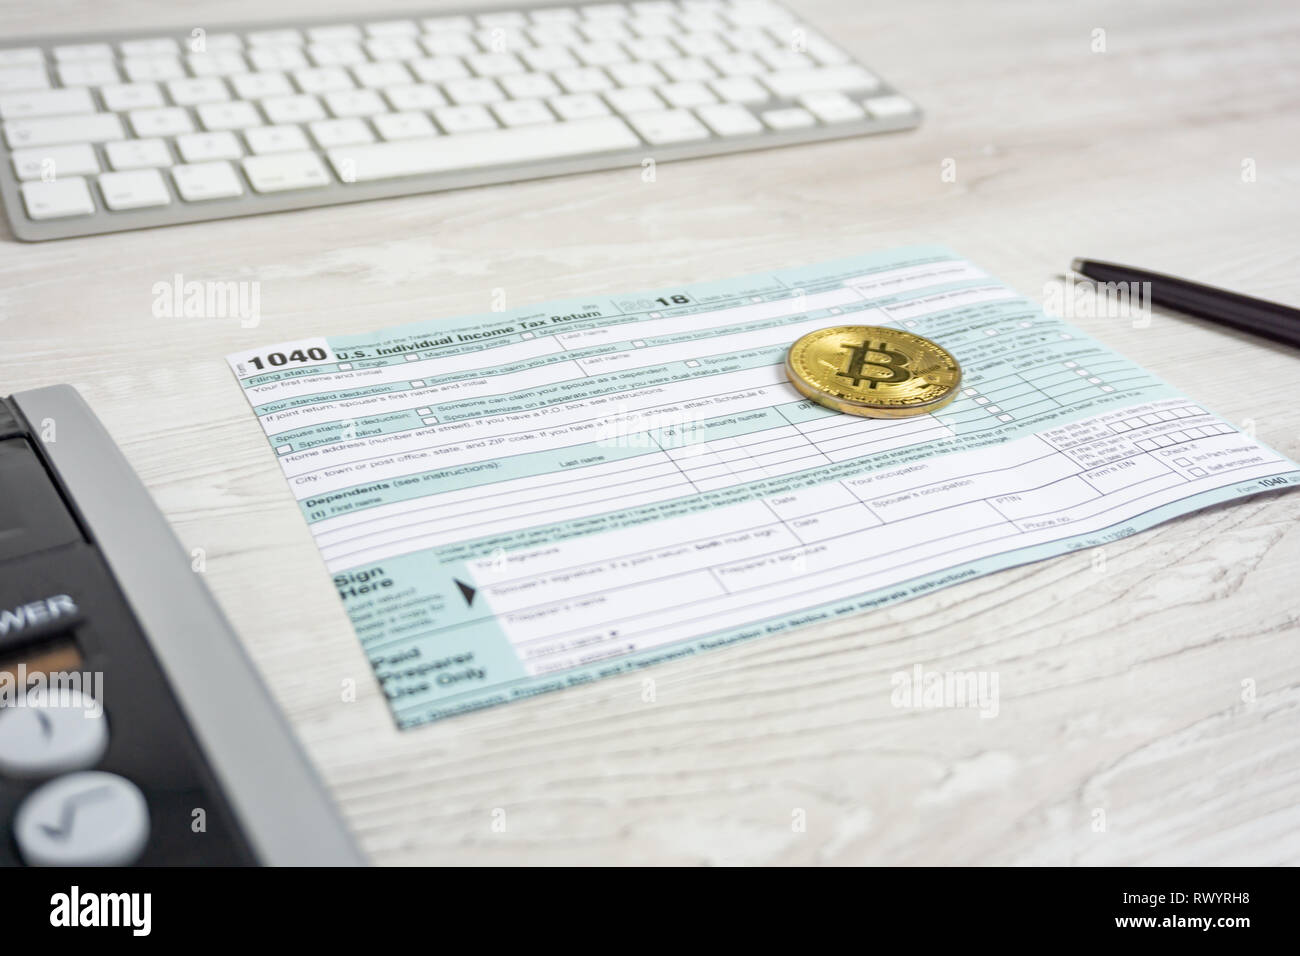 The pen, bitcoins and calculator on the tax form 1040 U S